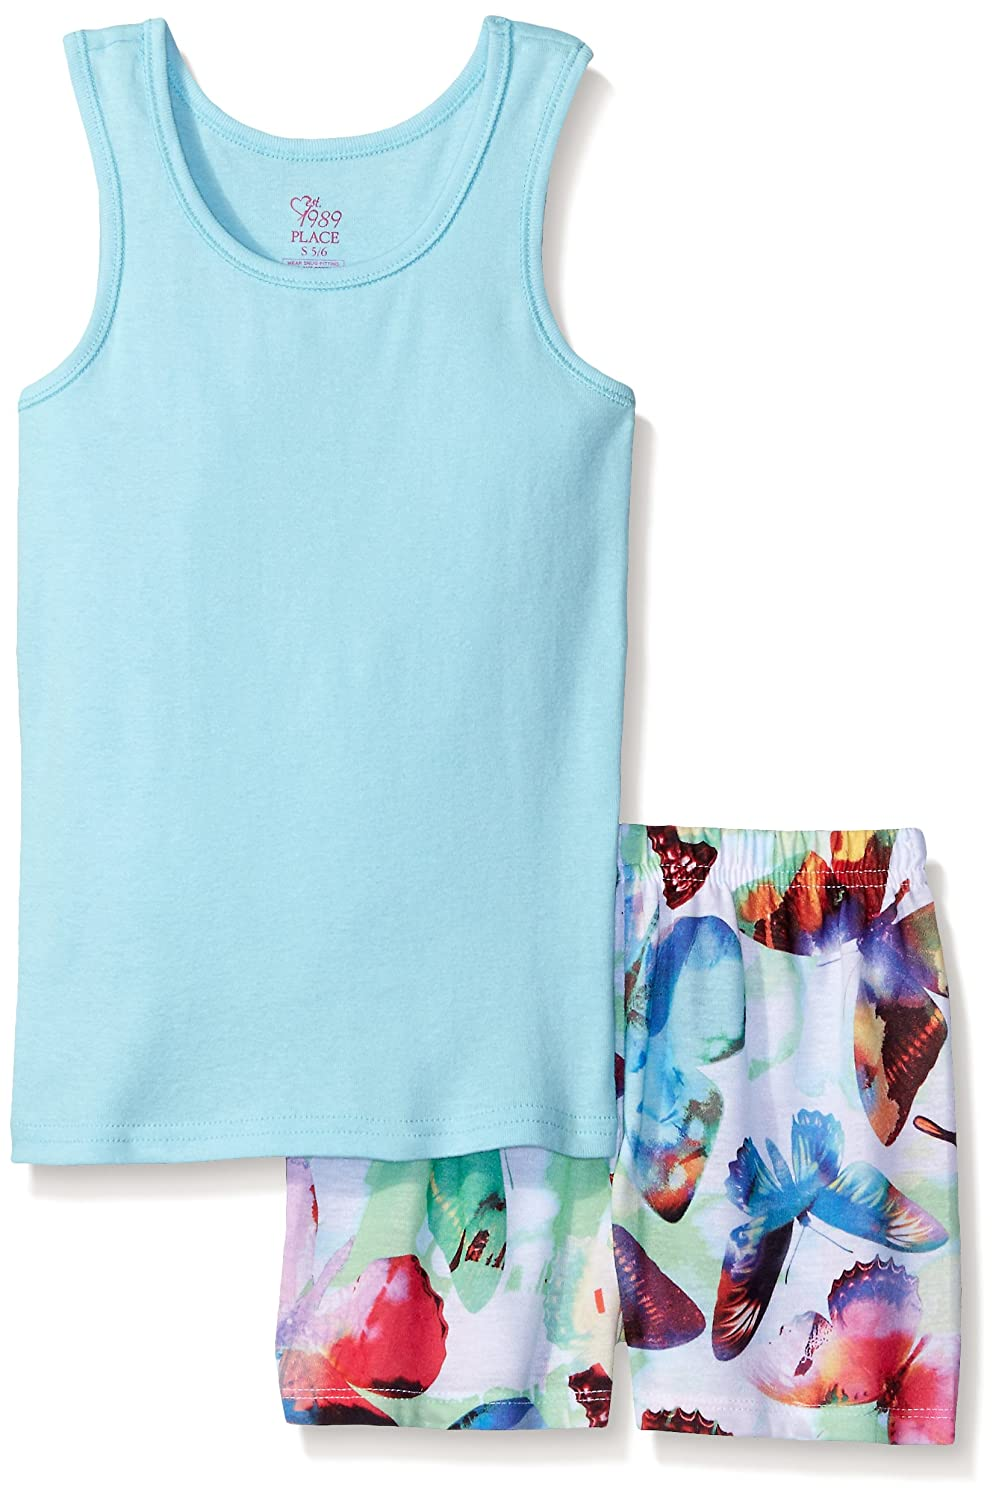 The Childrens Place Girls Top and Shorts Pajama Set